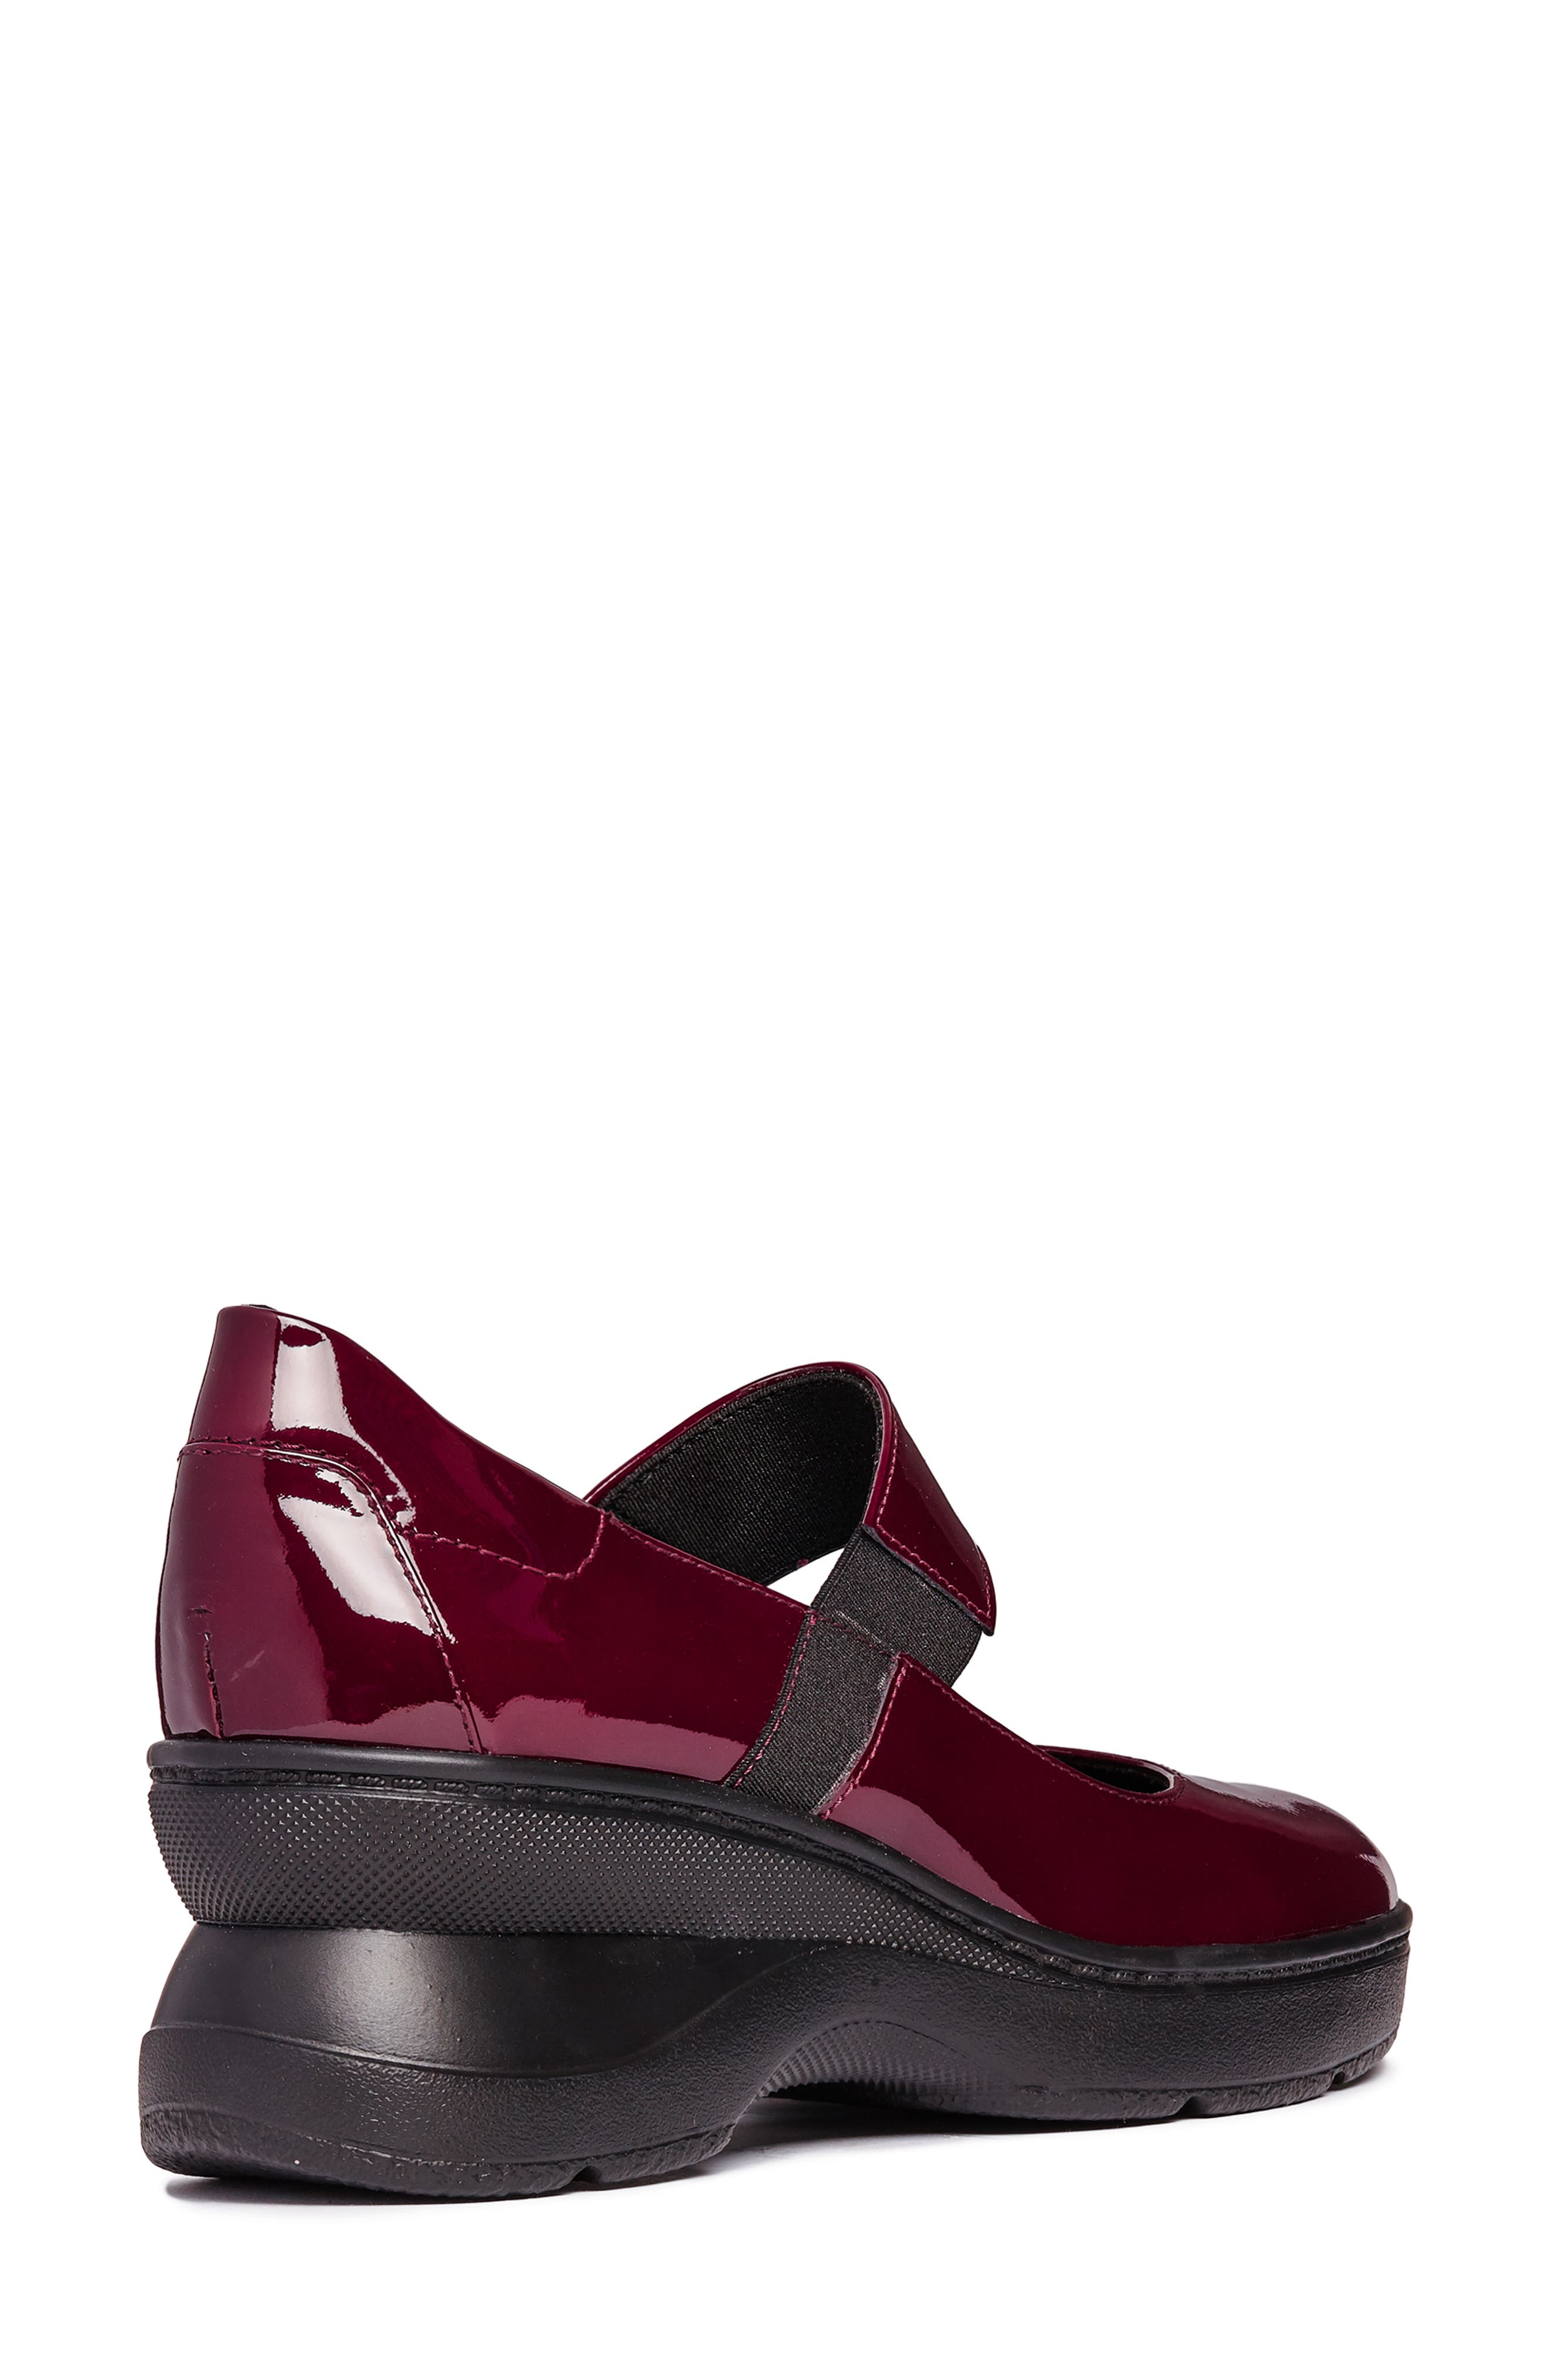 Ascythia Mary Jane Wedge,                             Alternate thumbnail 6, color,                             BORDEAUX LEATHER